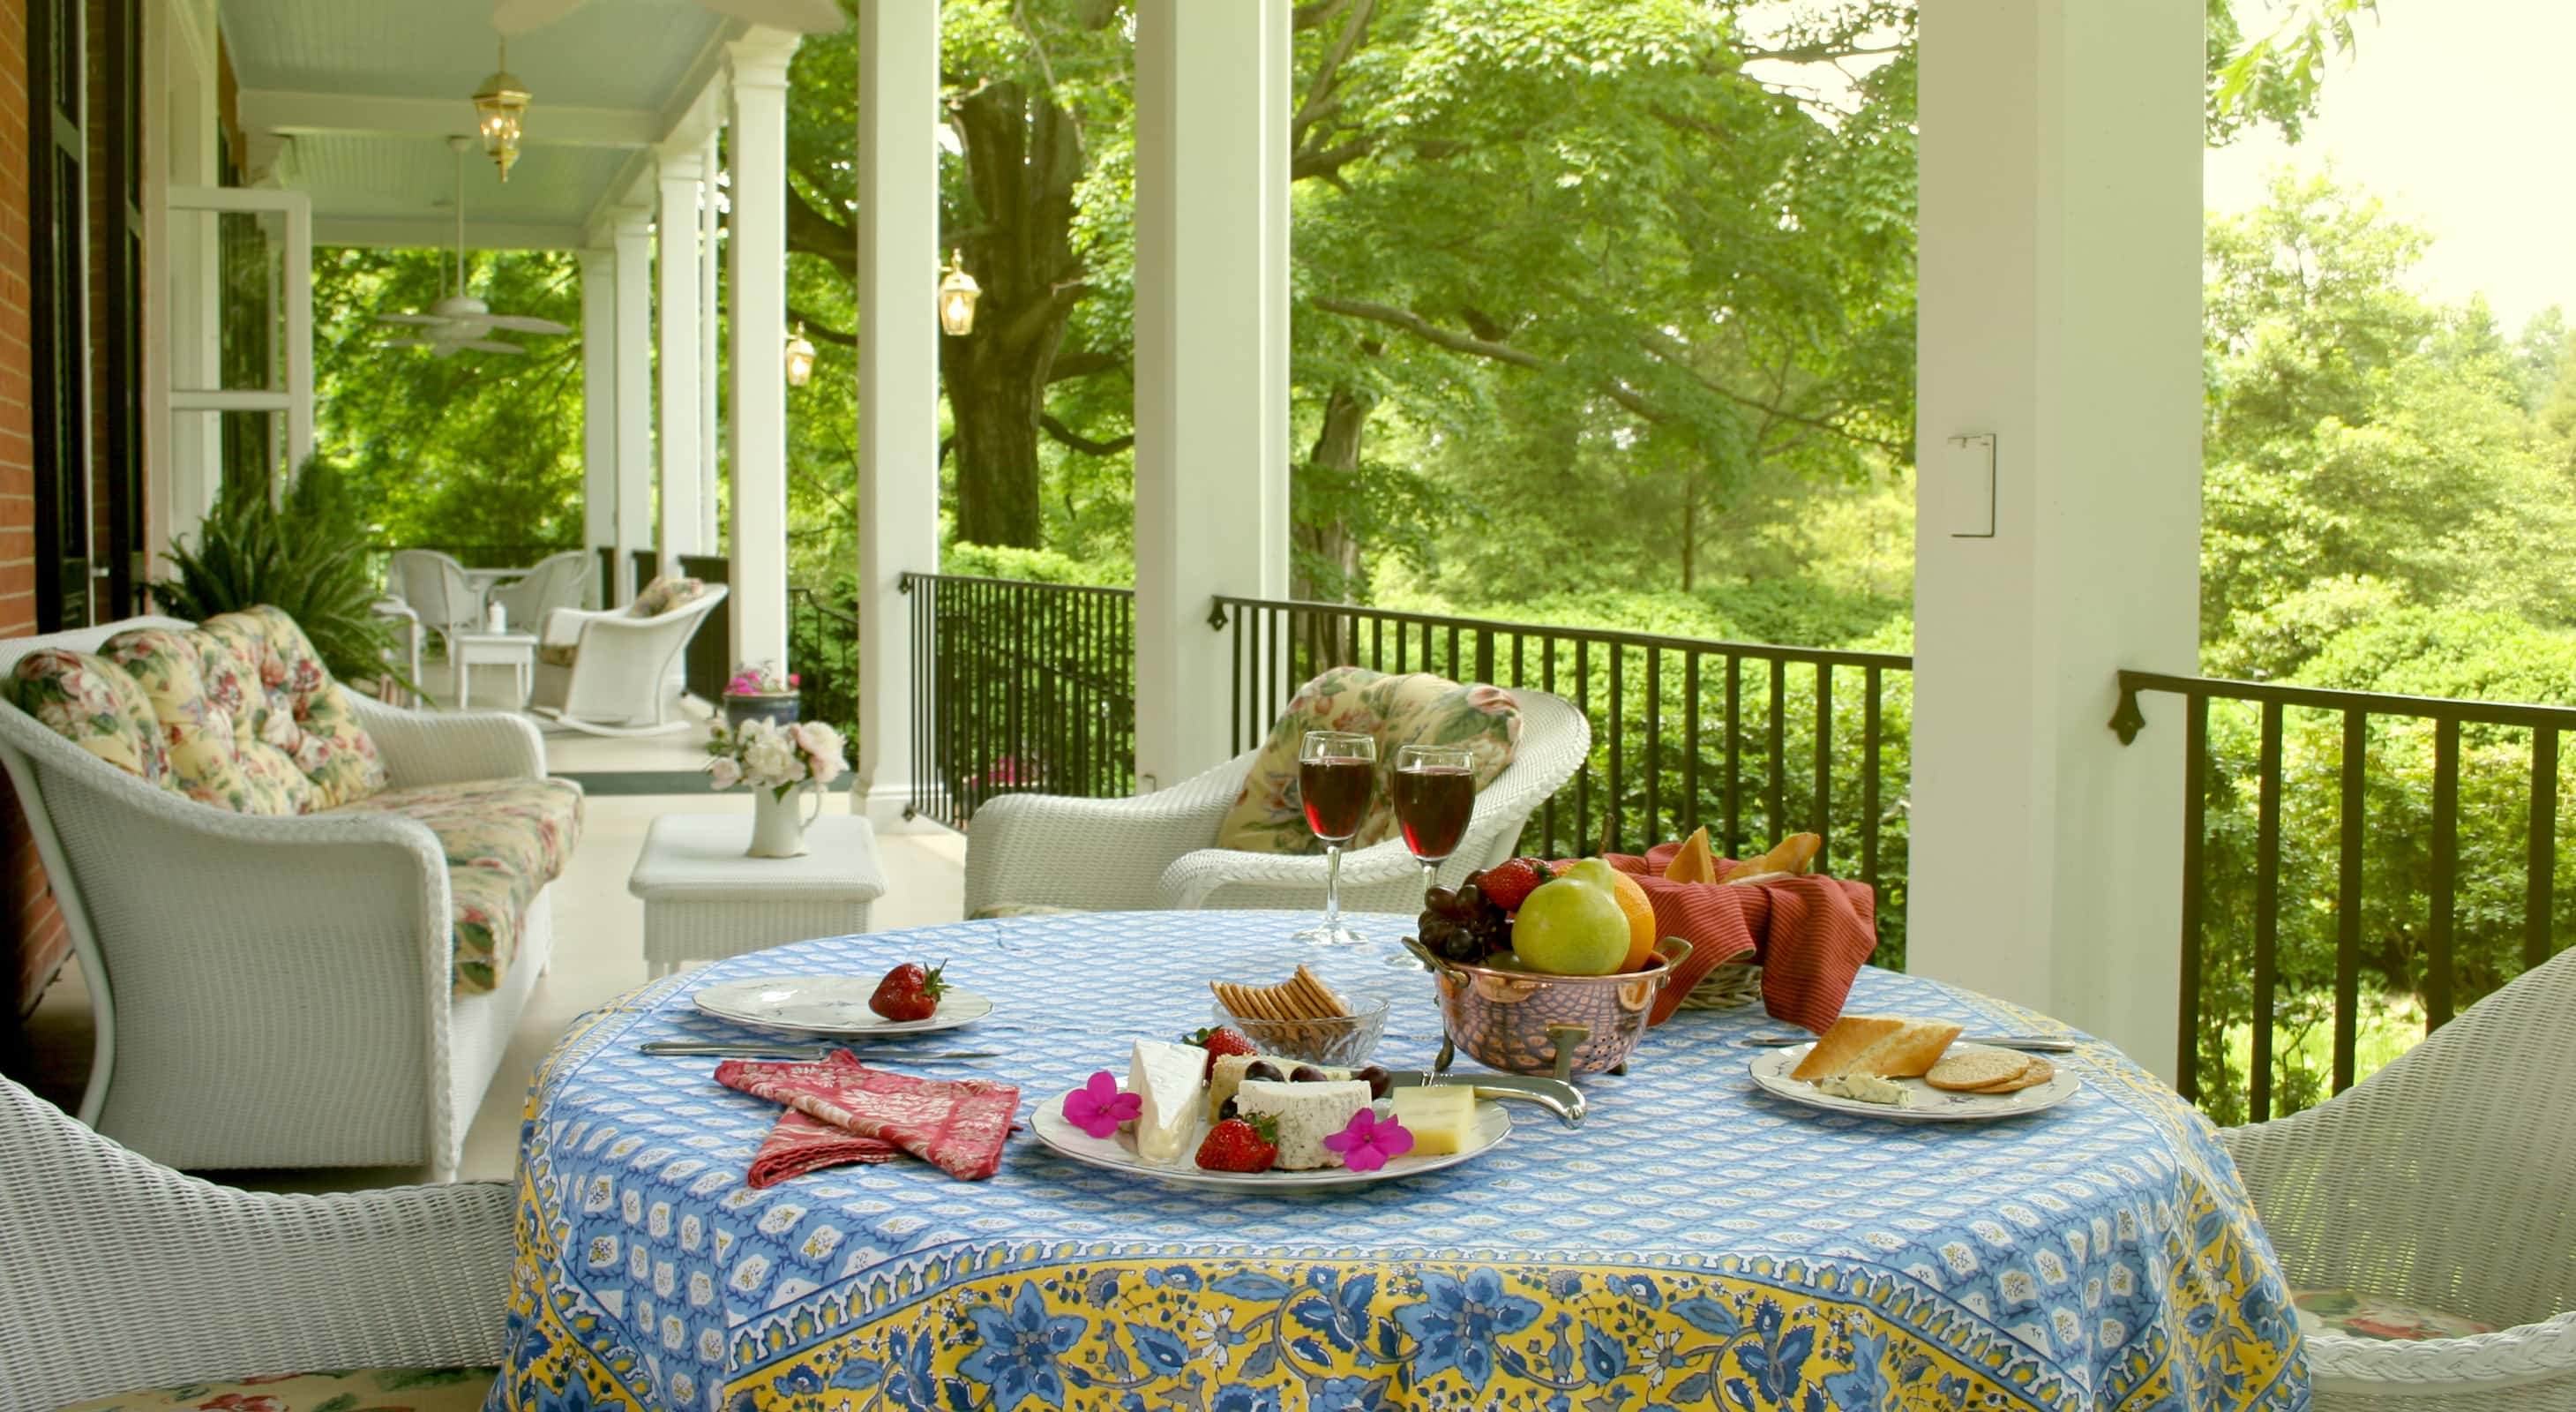 Porch with afternoon tea at our historic Maryland B&B